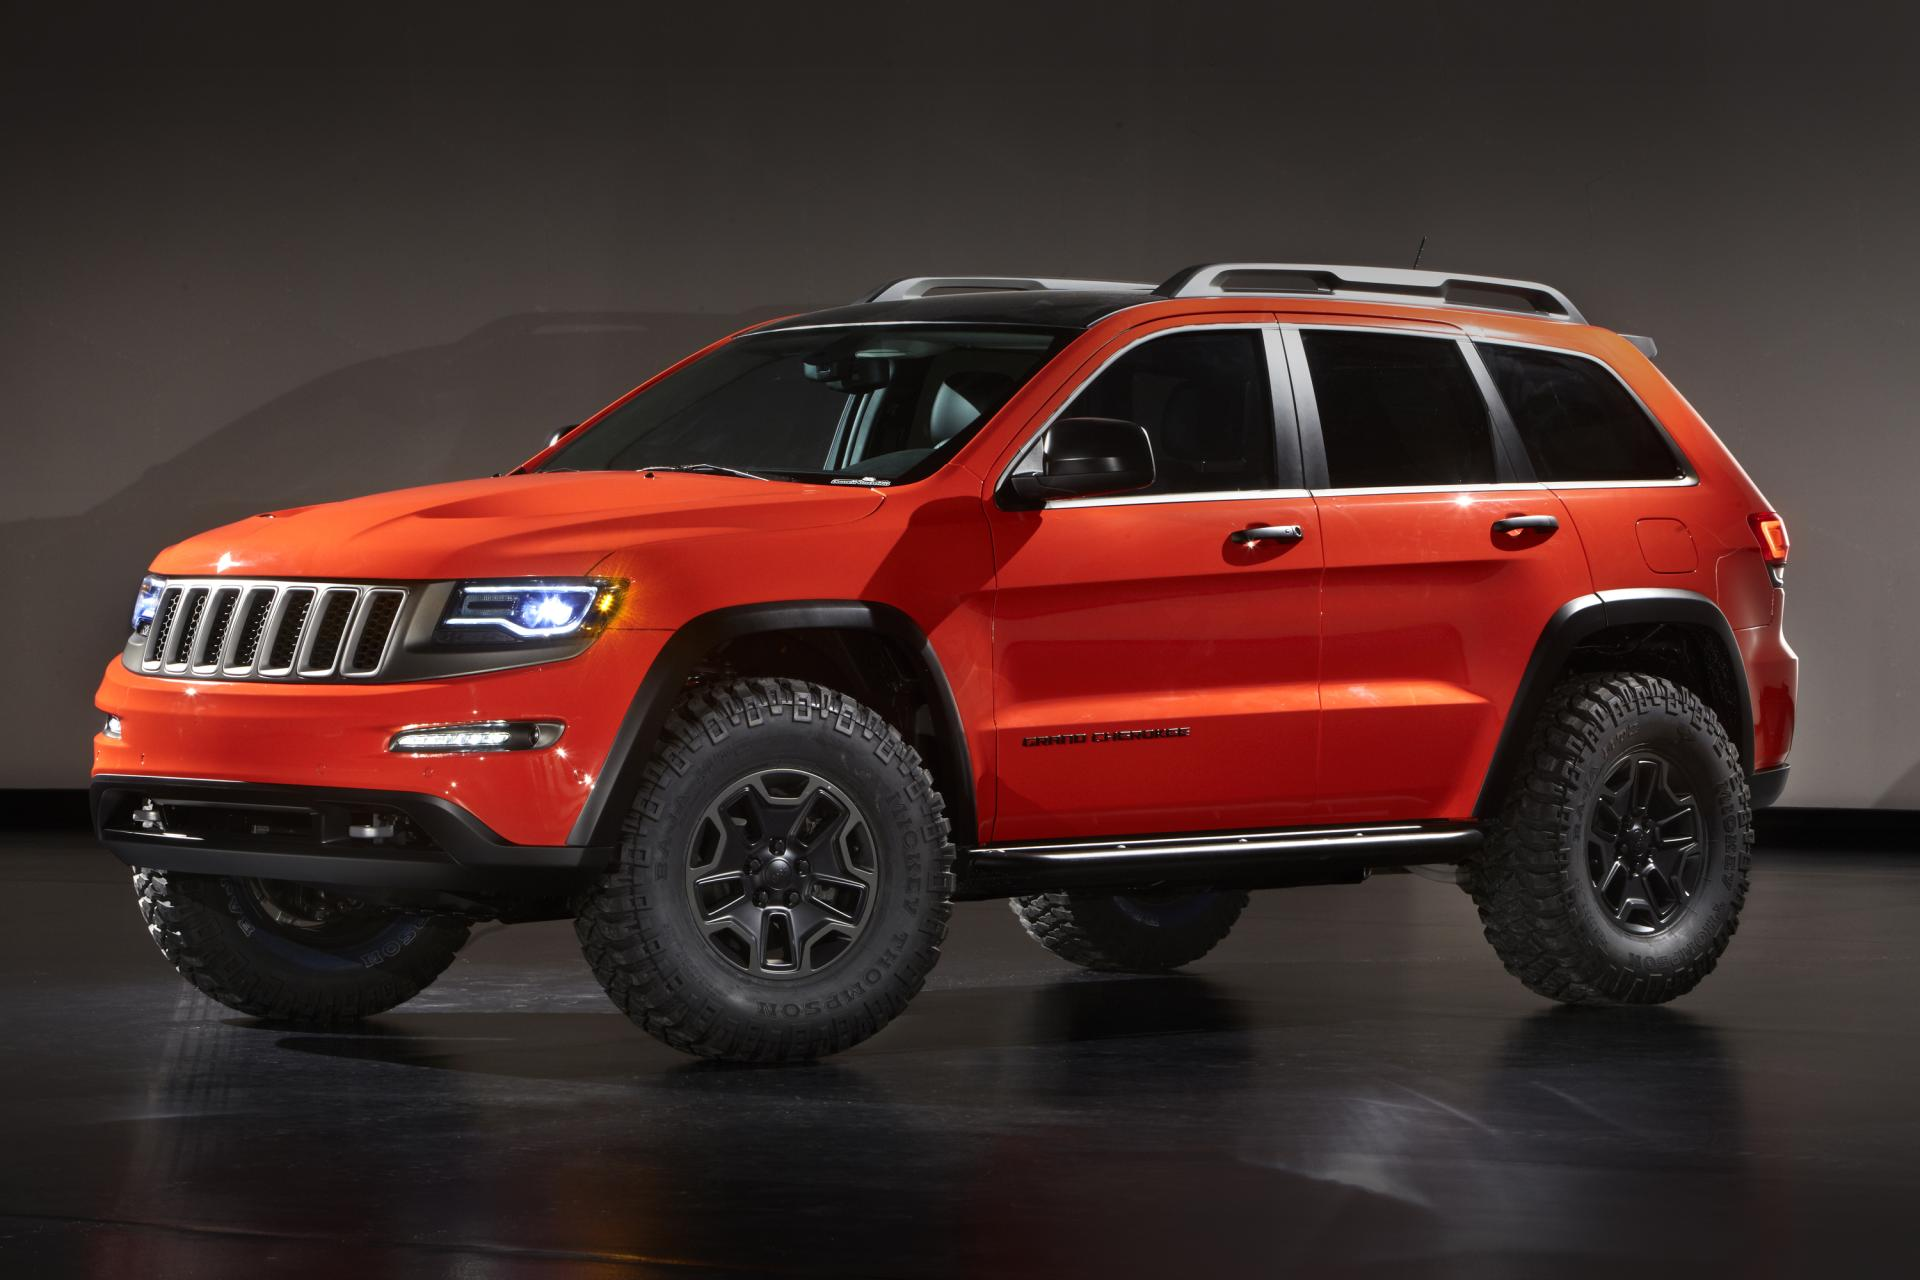 2013 Jeep Grand Cherokee Trailhawk II Concept News and Information